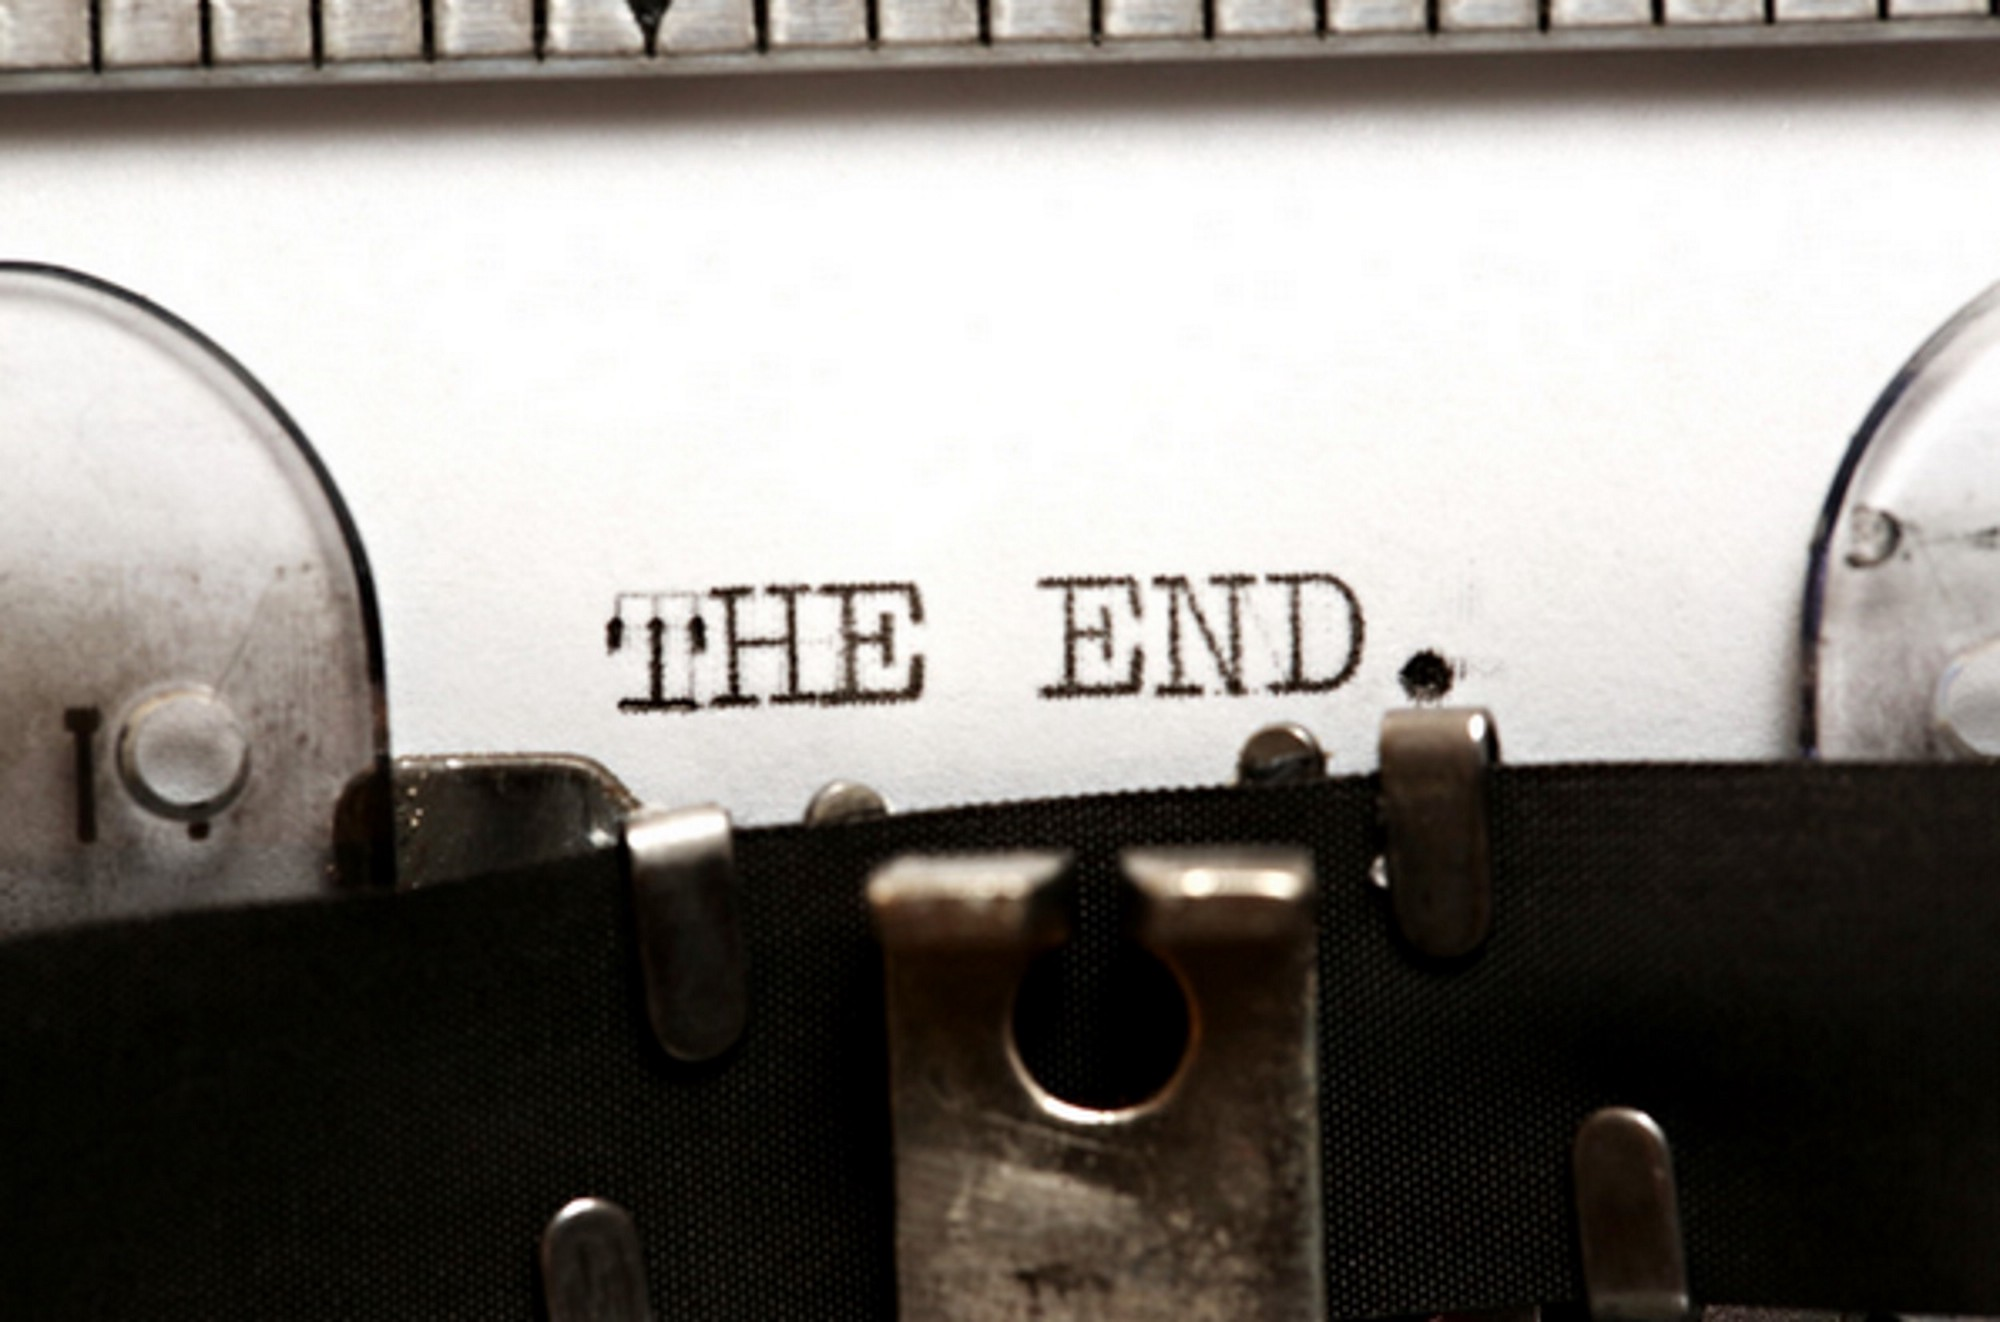 Photo of typewriter with the end—text on page